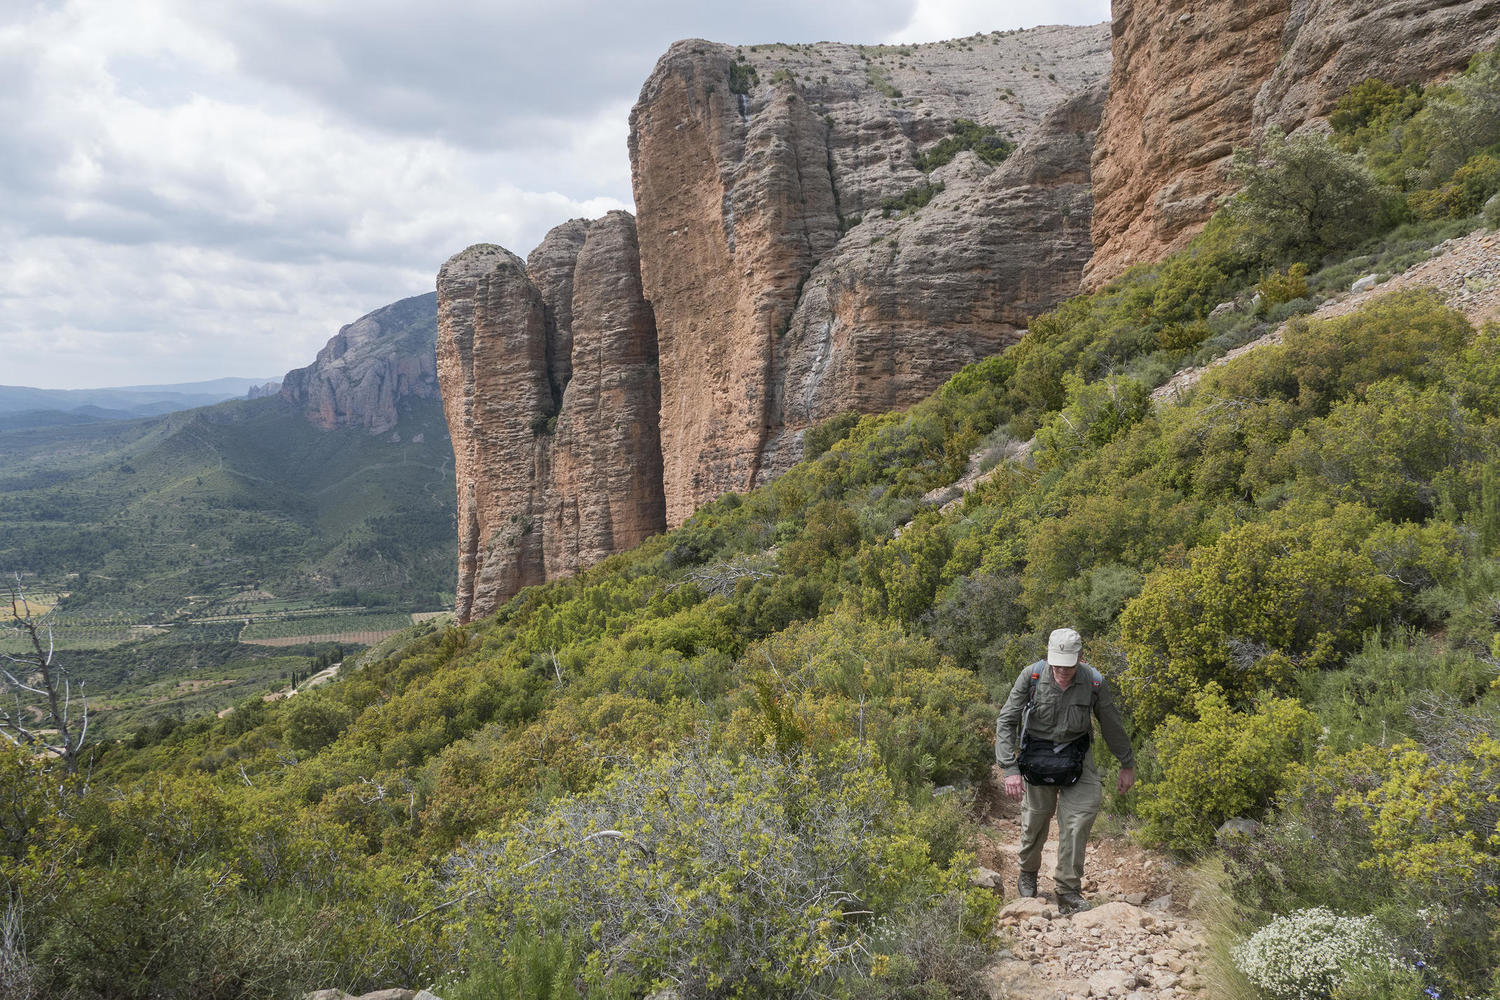 The trail known as the Path of Heaven circles the Mallos de Riglos.